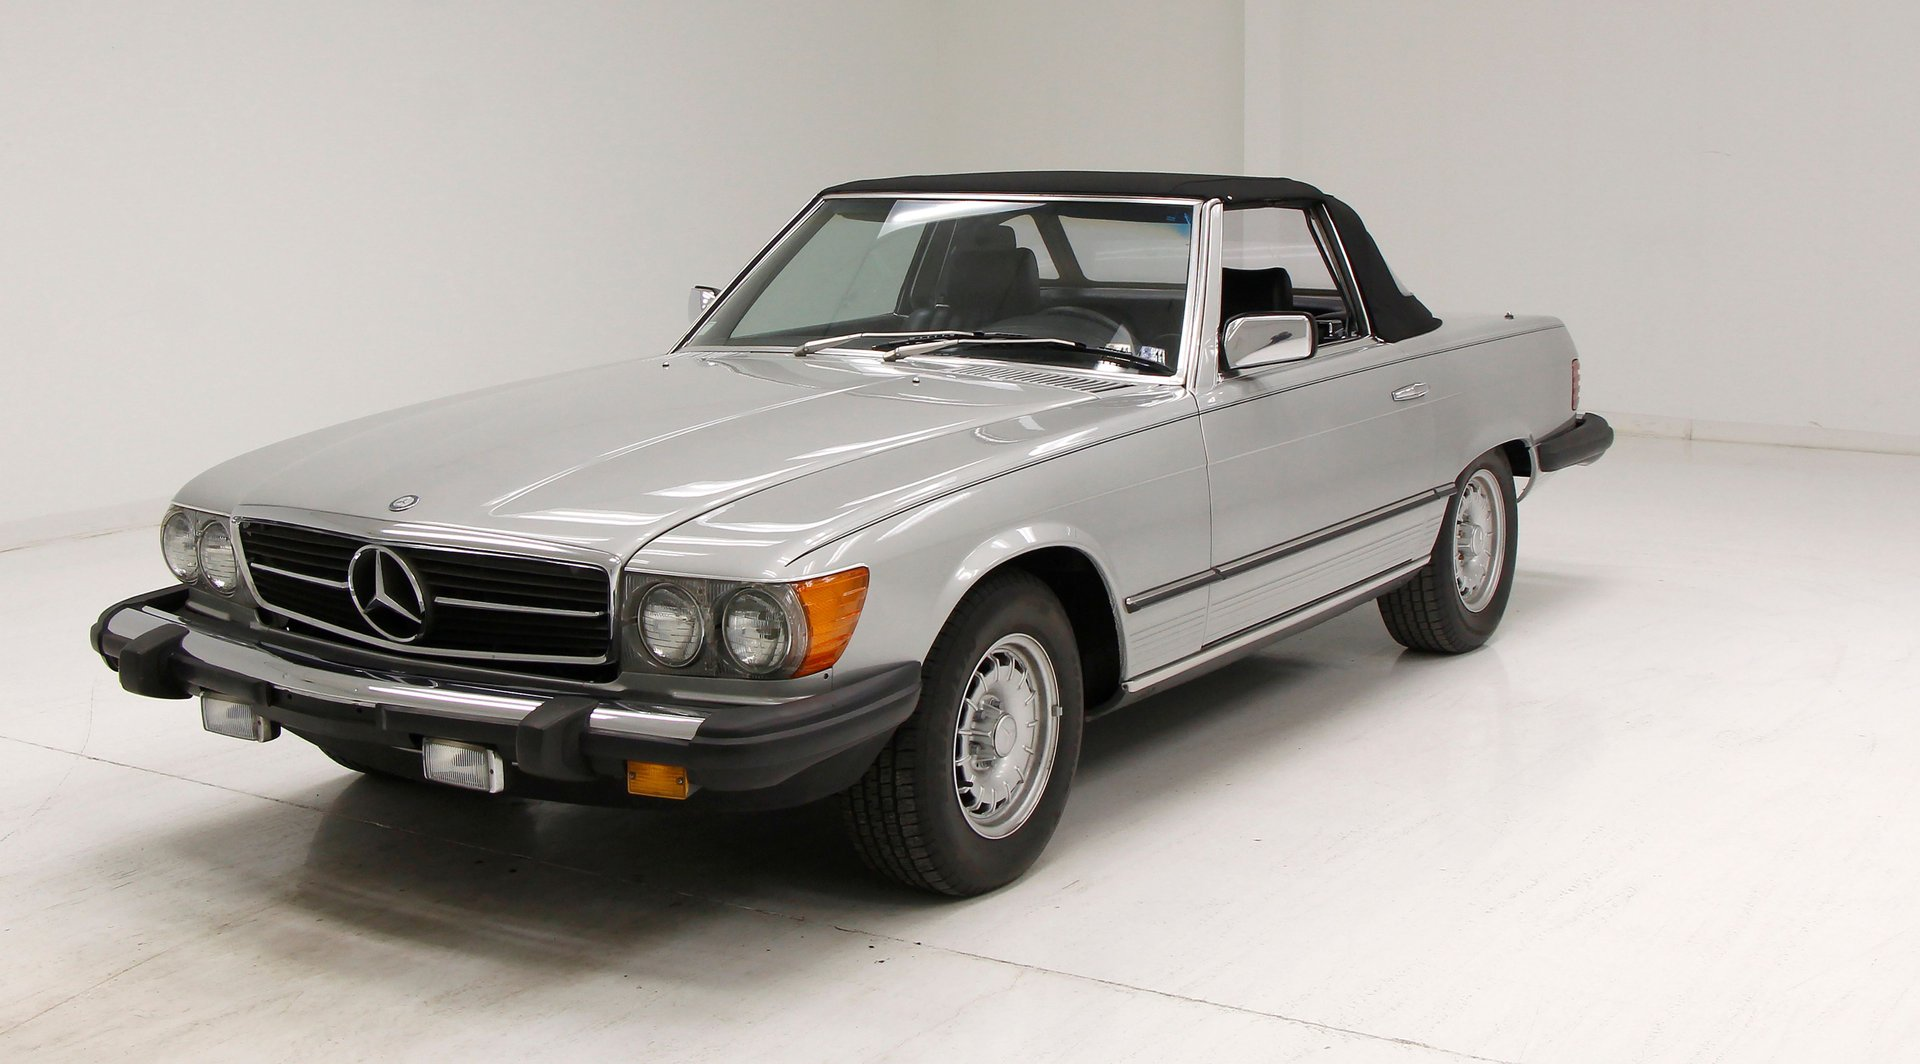 1984 Mercedes-Benz 380 SL Convertible